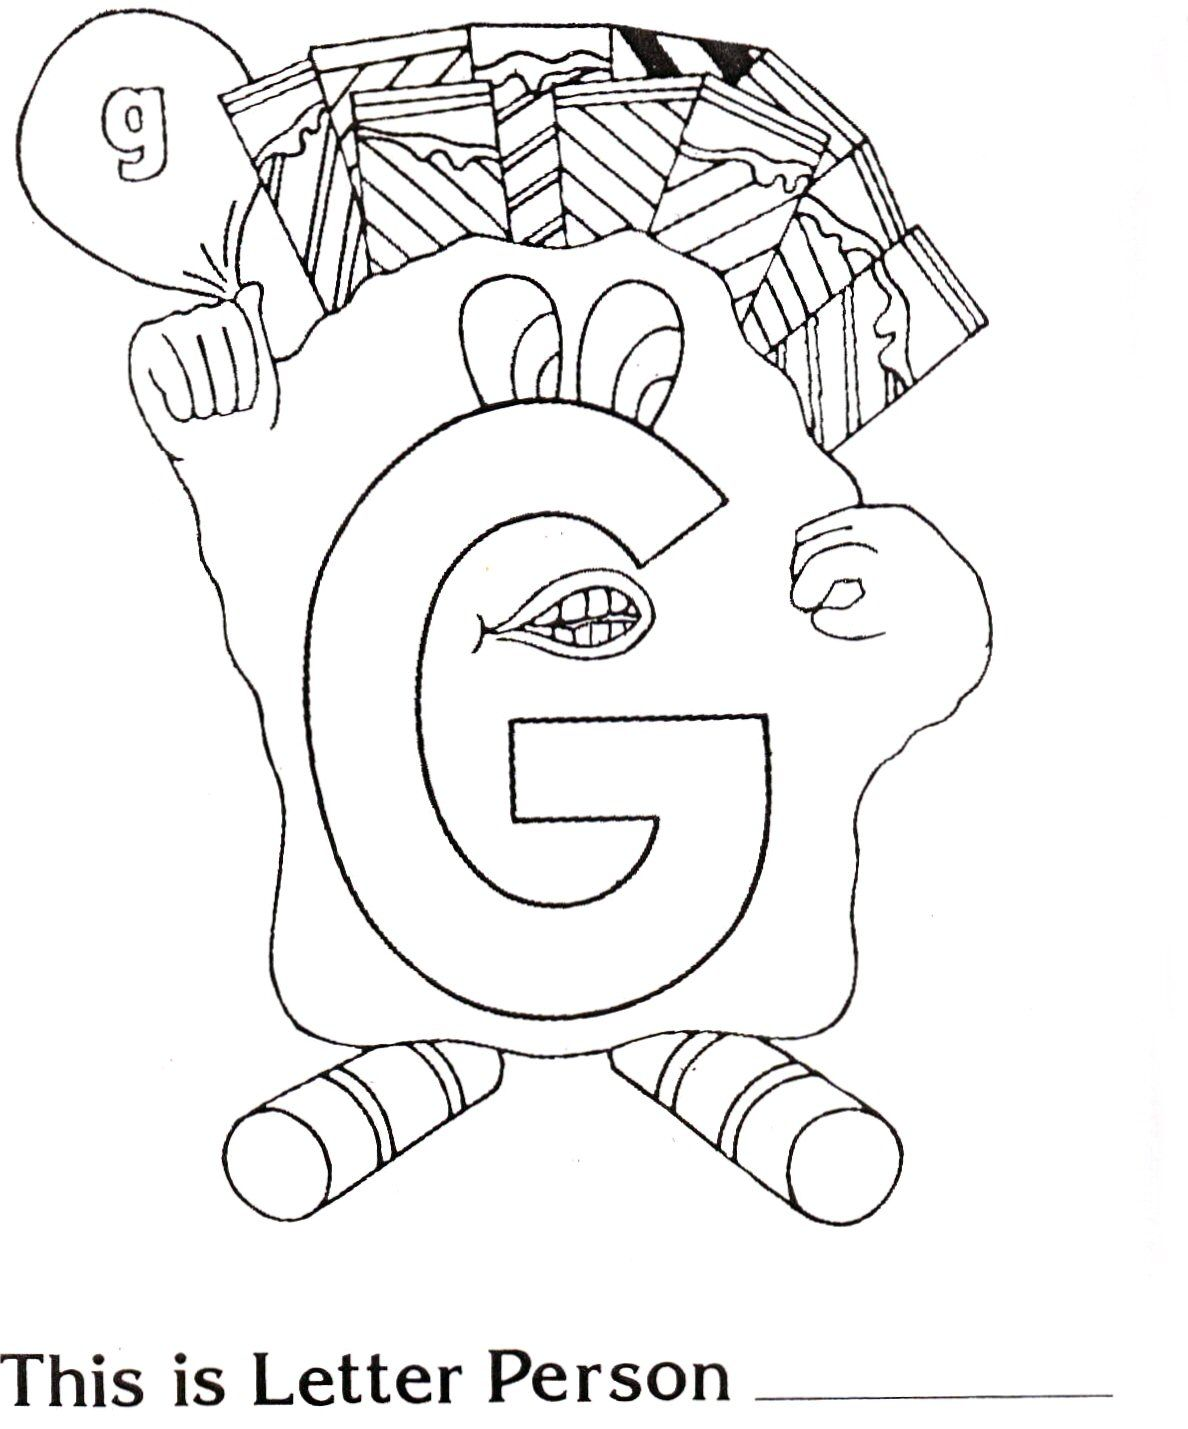 Mrg Letter People Coloring Page Letter People People Coloring Pages Personalized Letters [ 1429 x 1188 Pixel ]